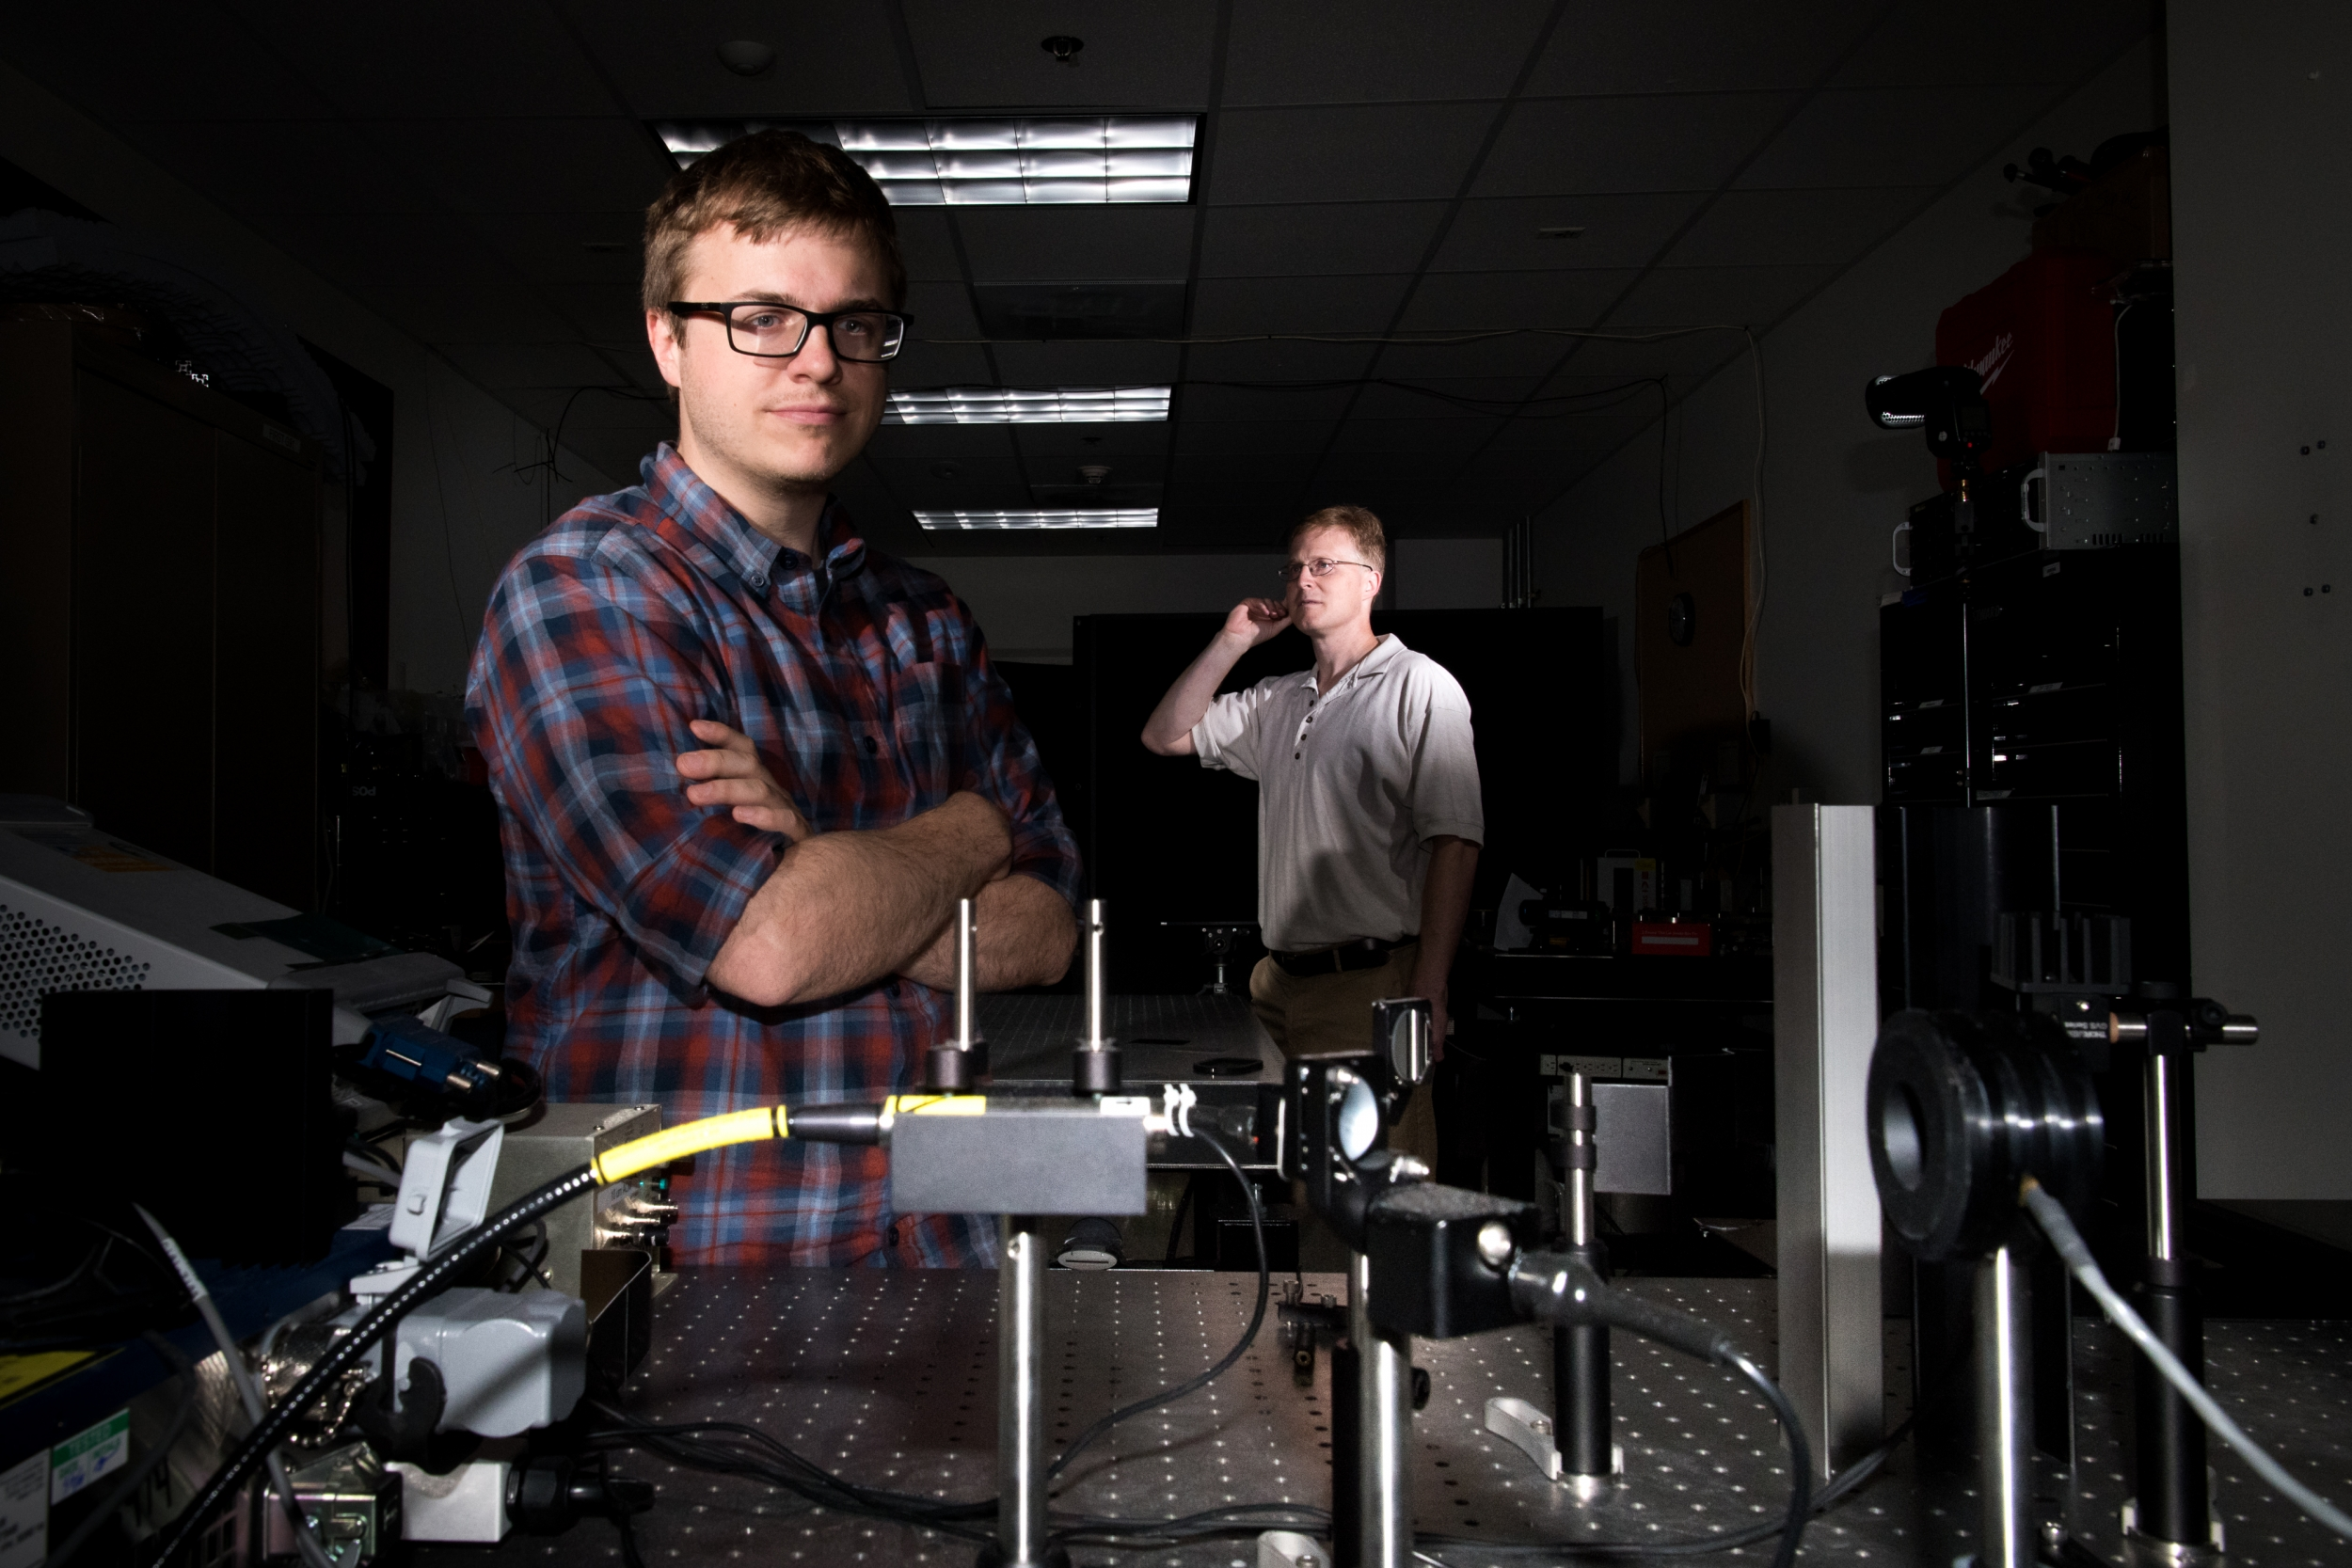 Two men standing in a laboratory with a laser transmitter setup